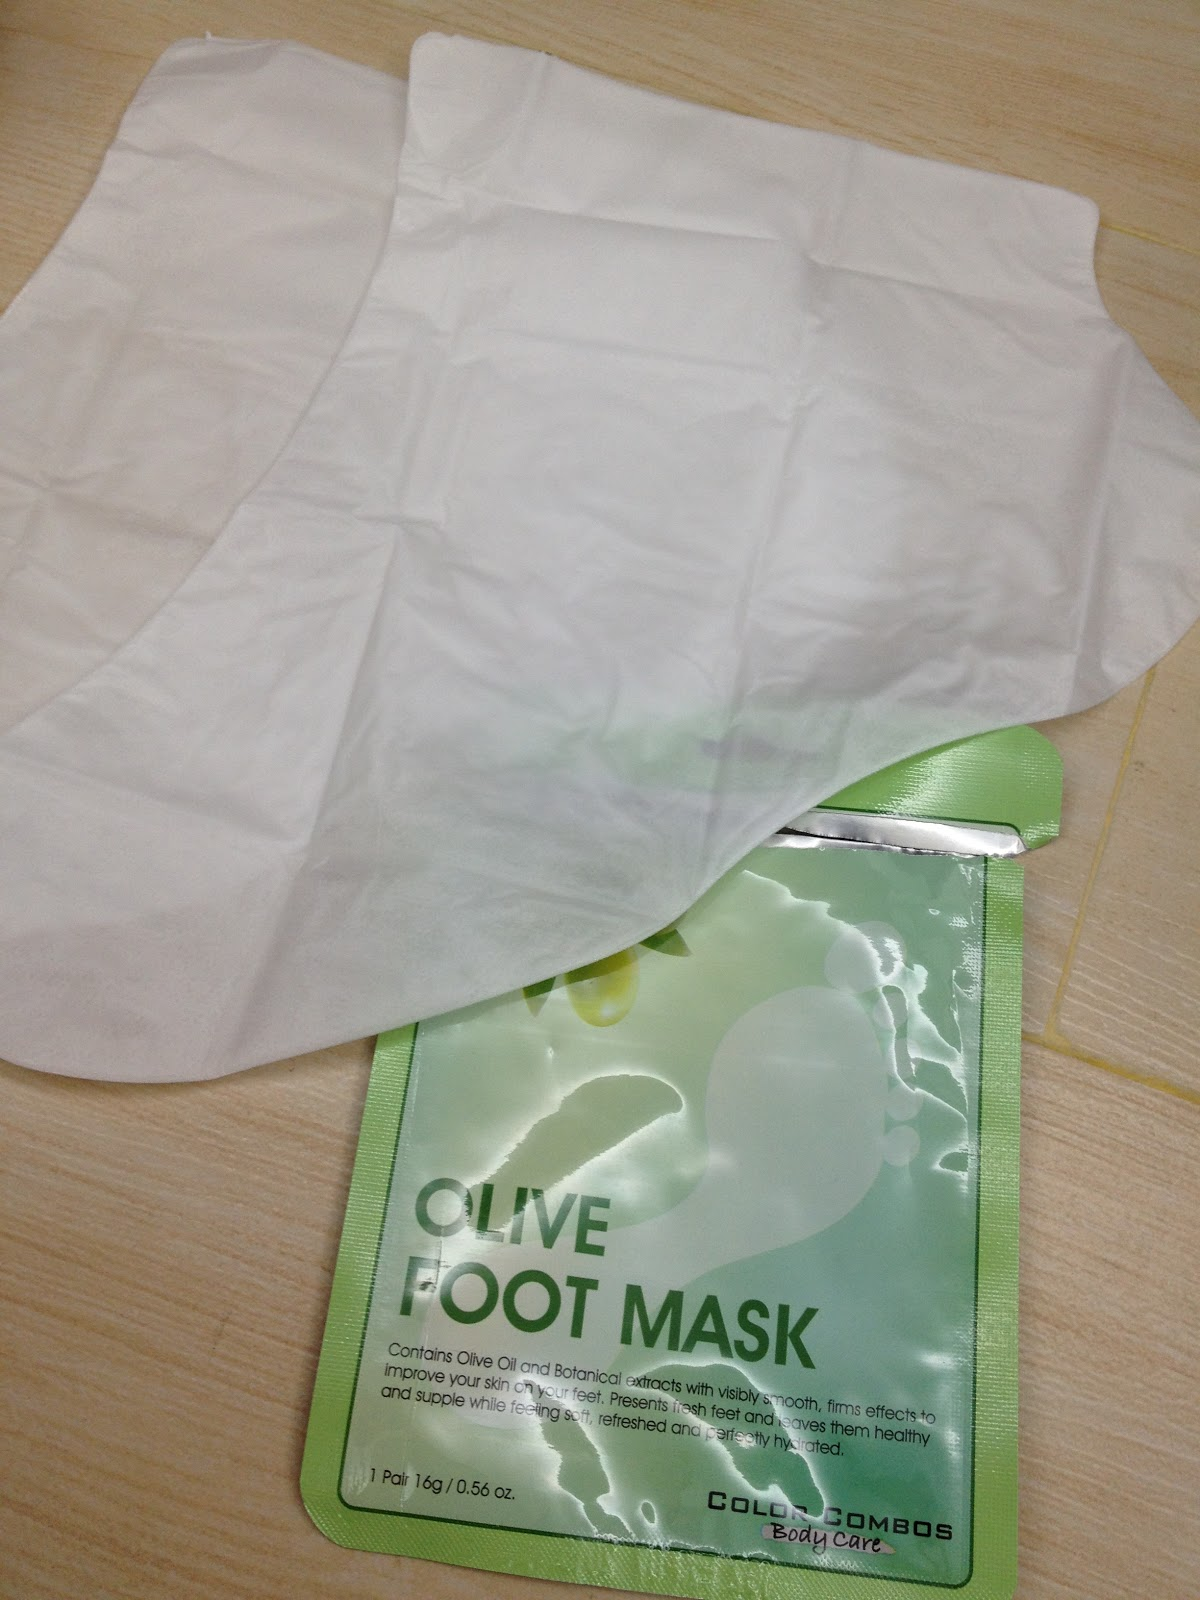 Olive foot mask - waste of money don't buy ~ Buying the ...